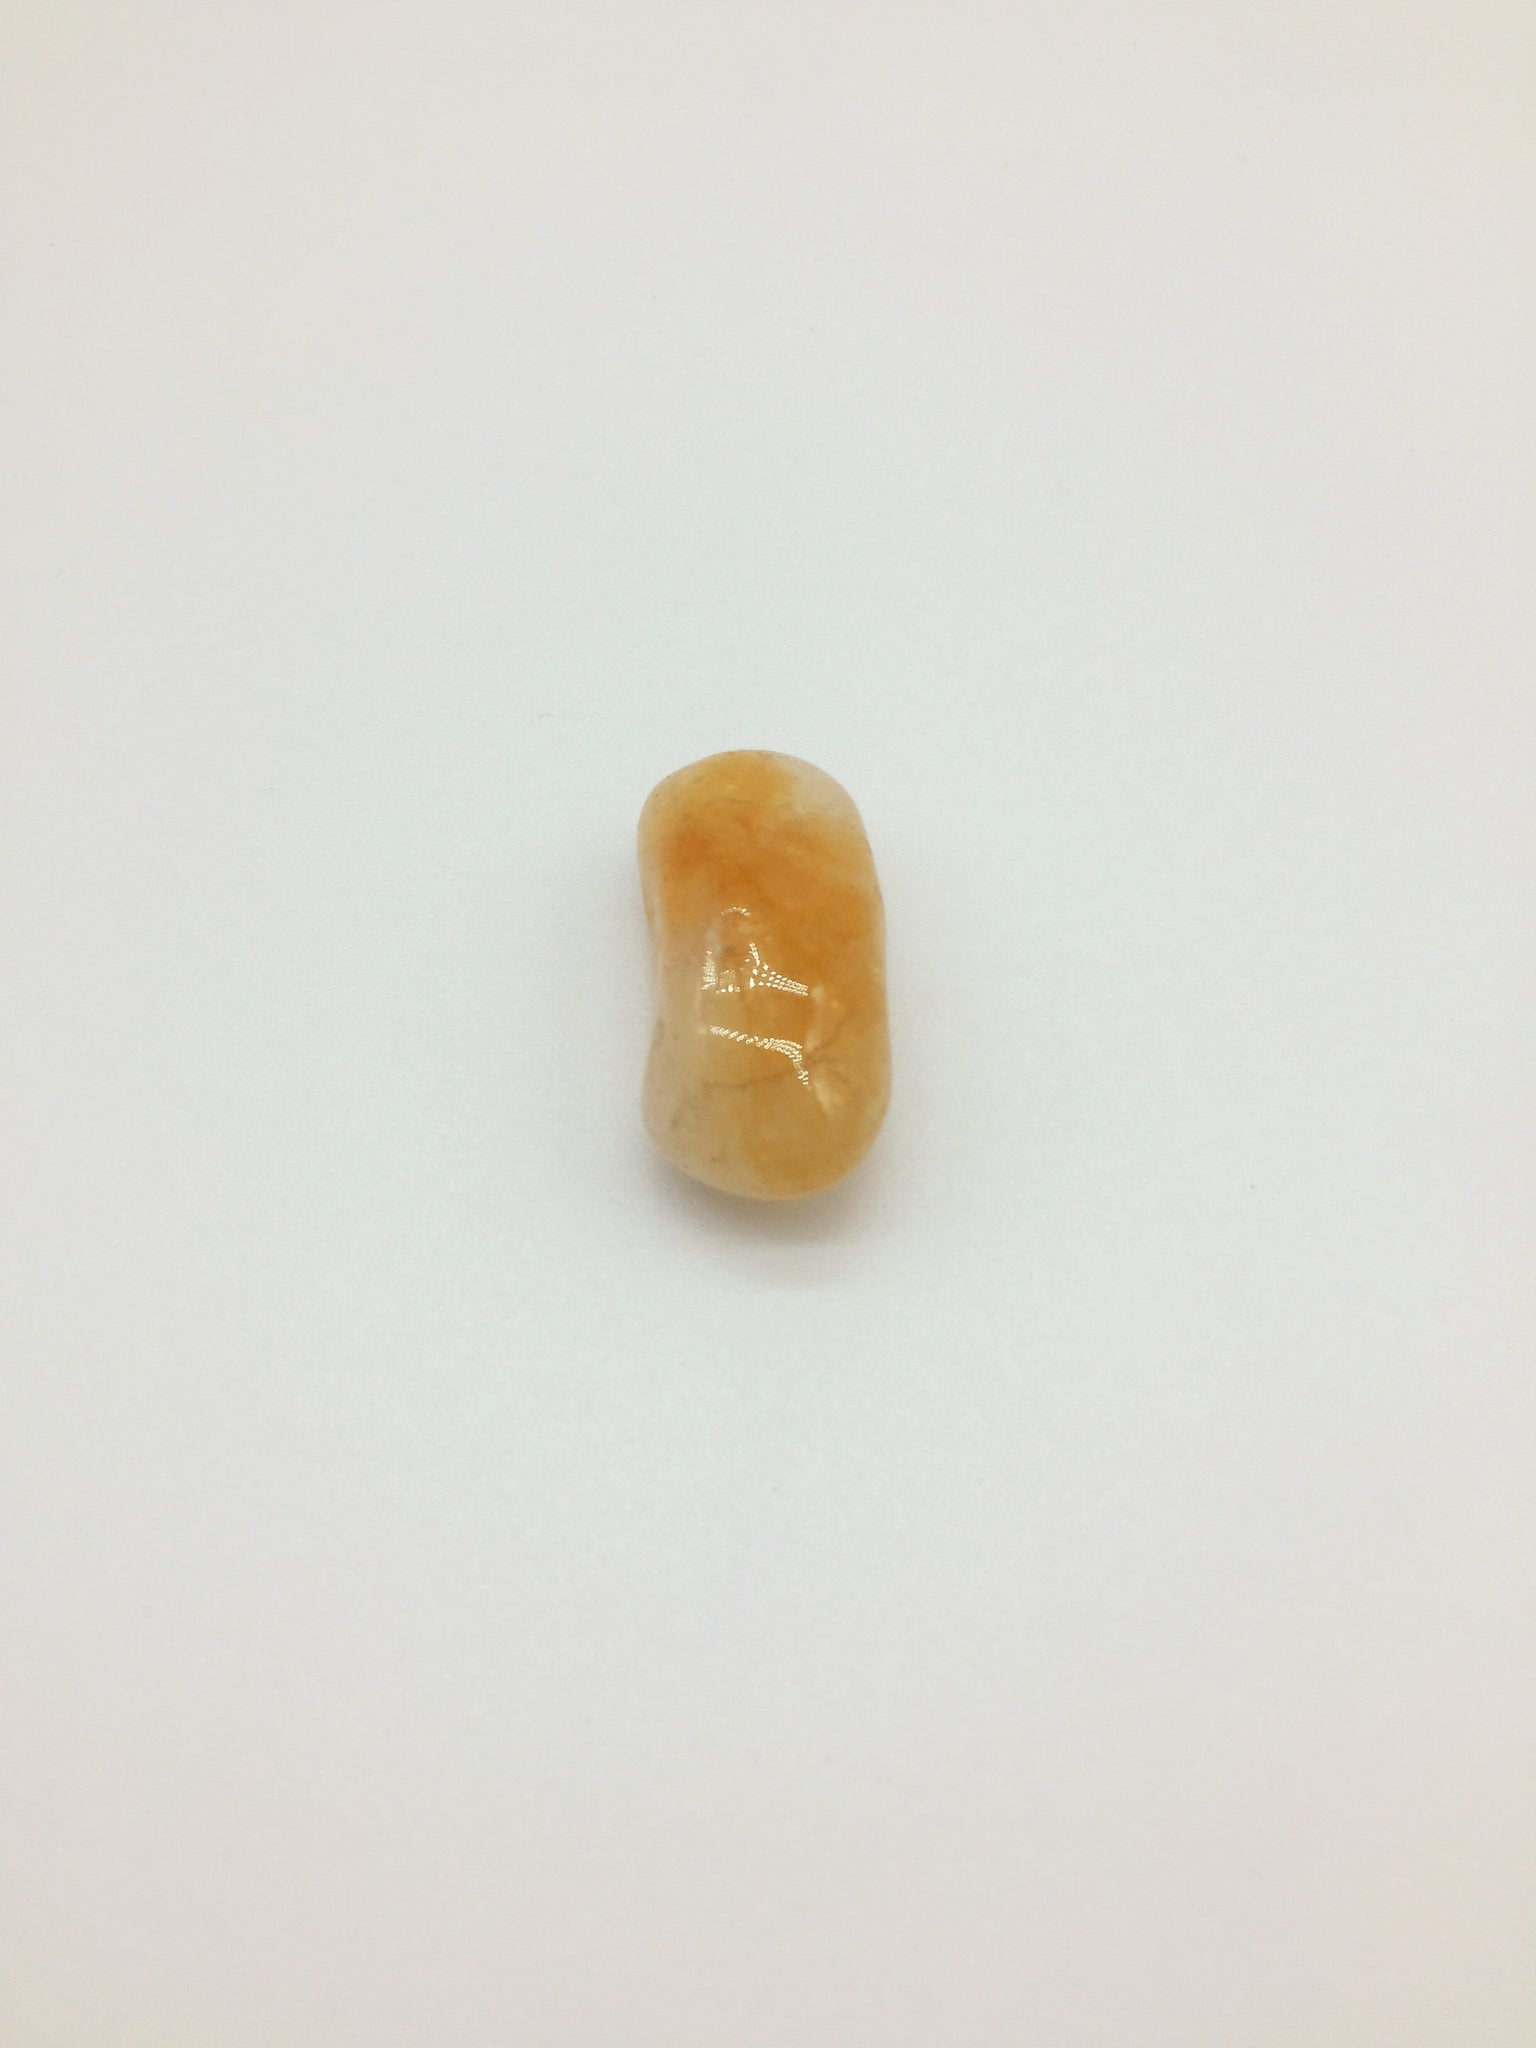 Citrine Healing stone promotes Positivity & Happiness and Wealth, Luck & Prosperity